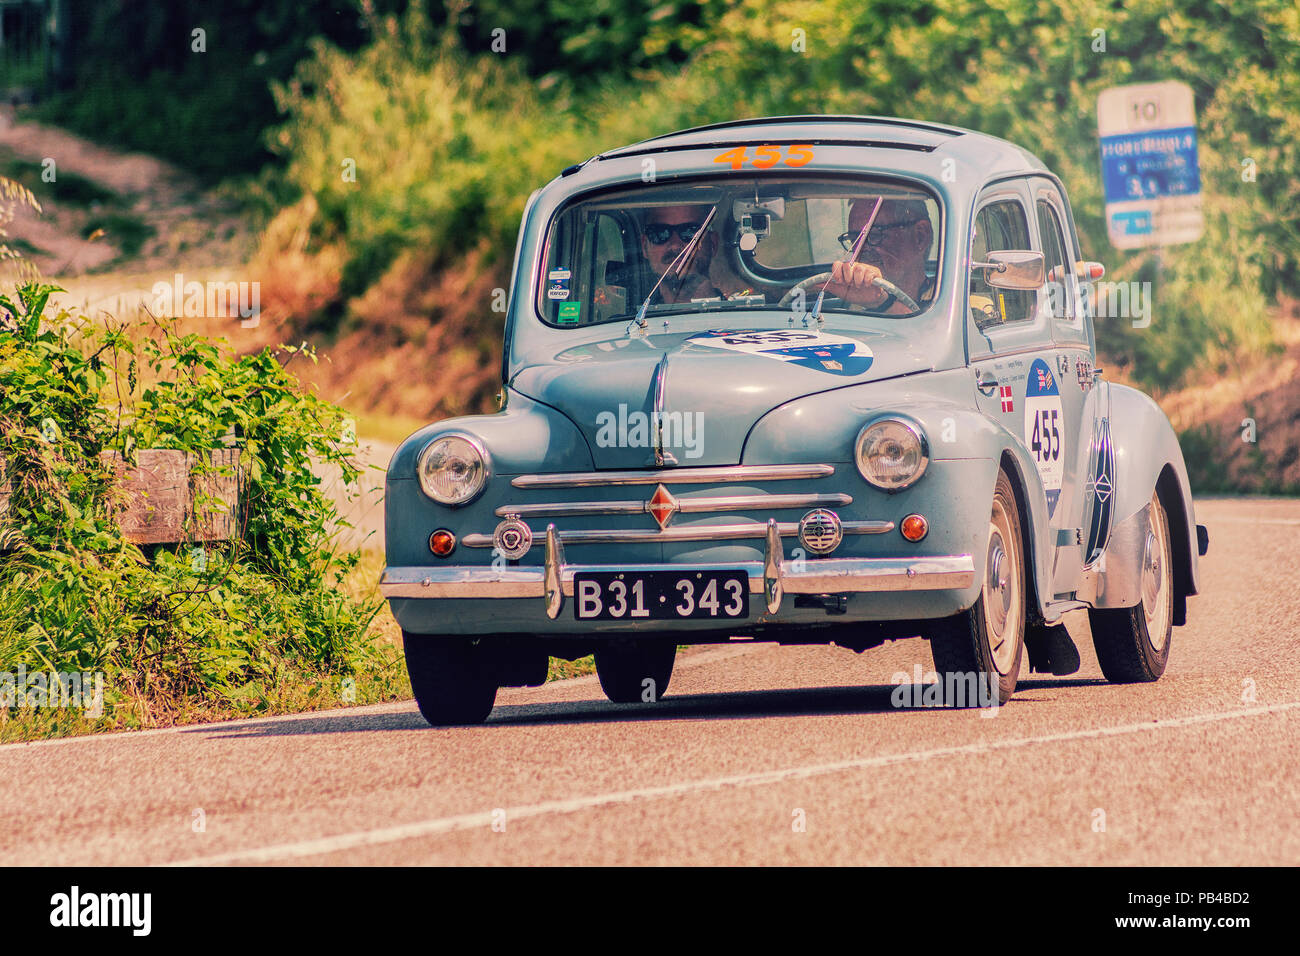 renault 4 cv stock photos  u0026 renault 4 cv stock images